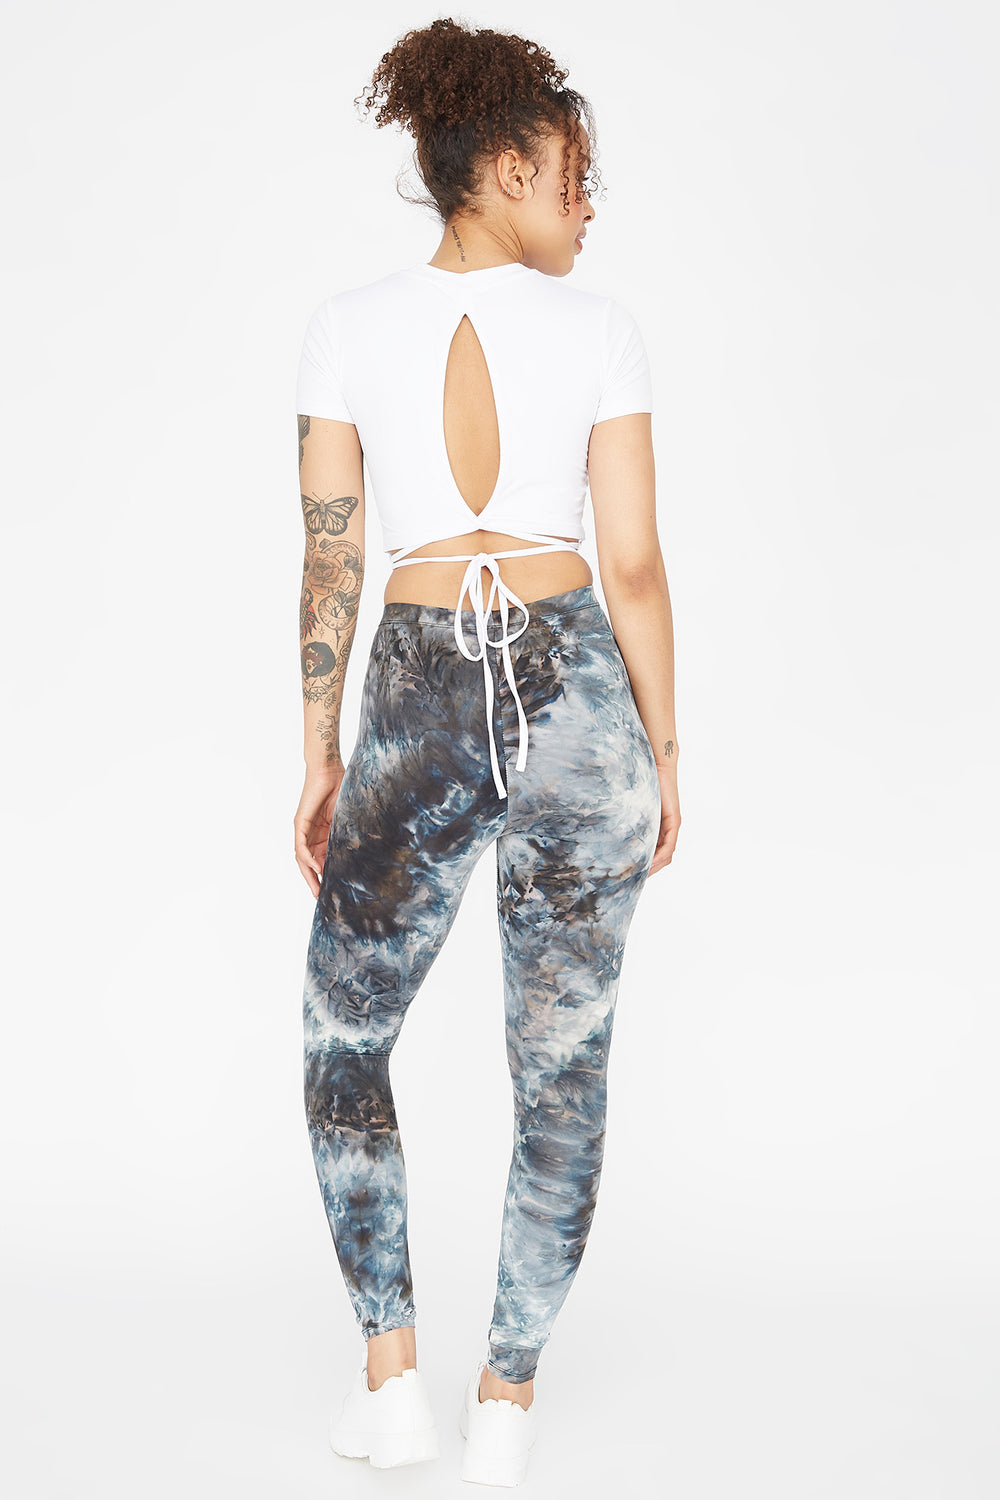 Soft Black and White Tie Dye Legging Black with White